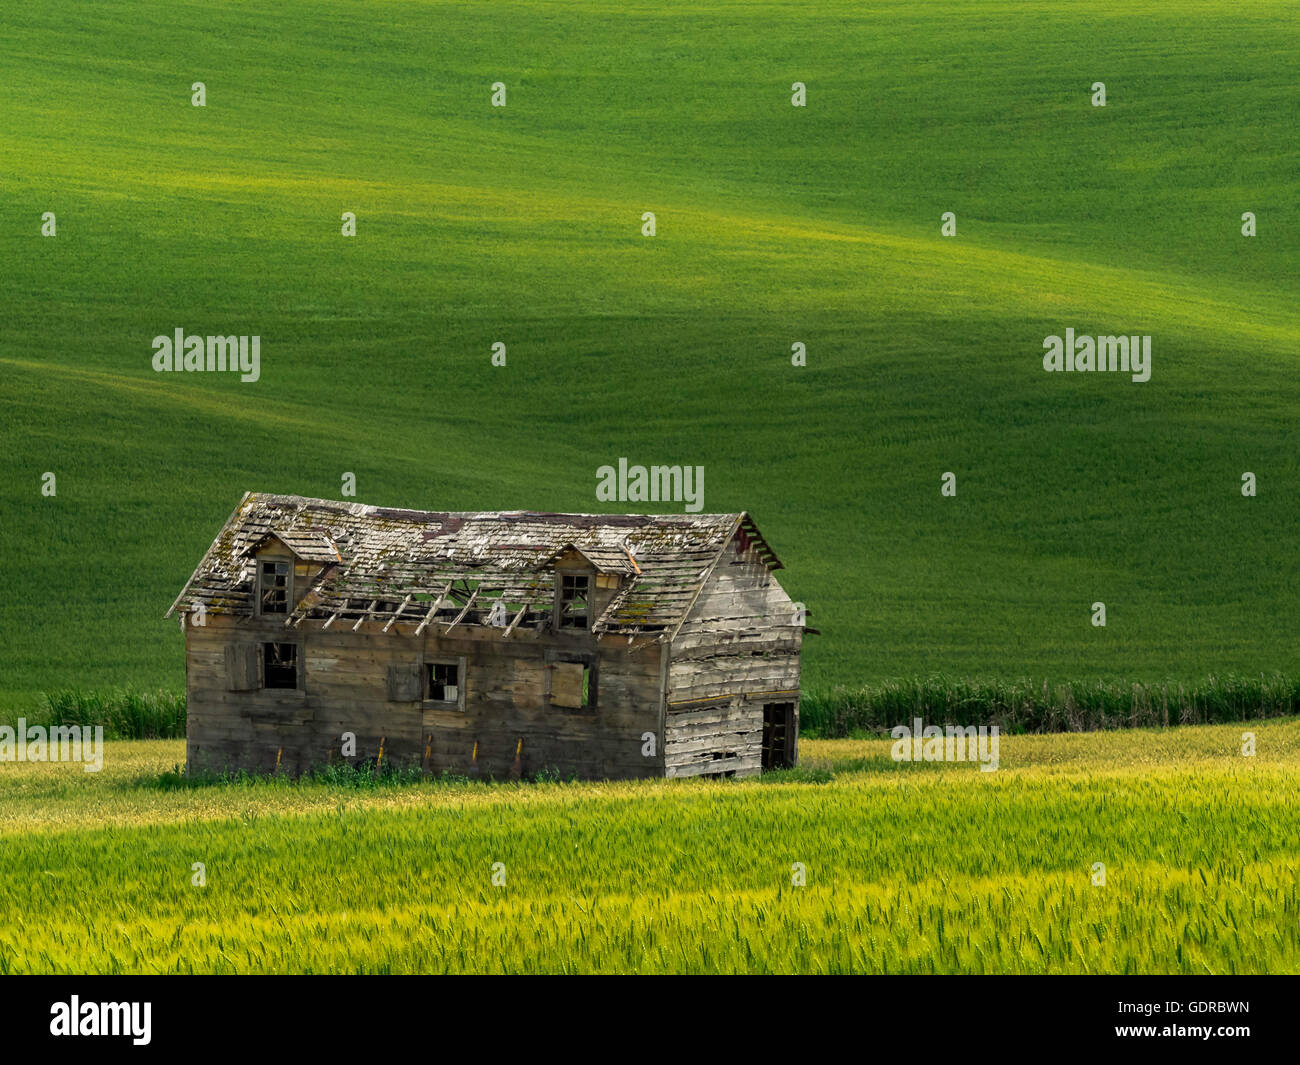 An abandon house sitting in a canola field. - Stock Image